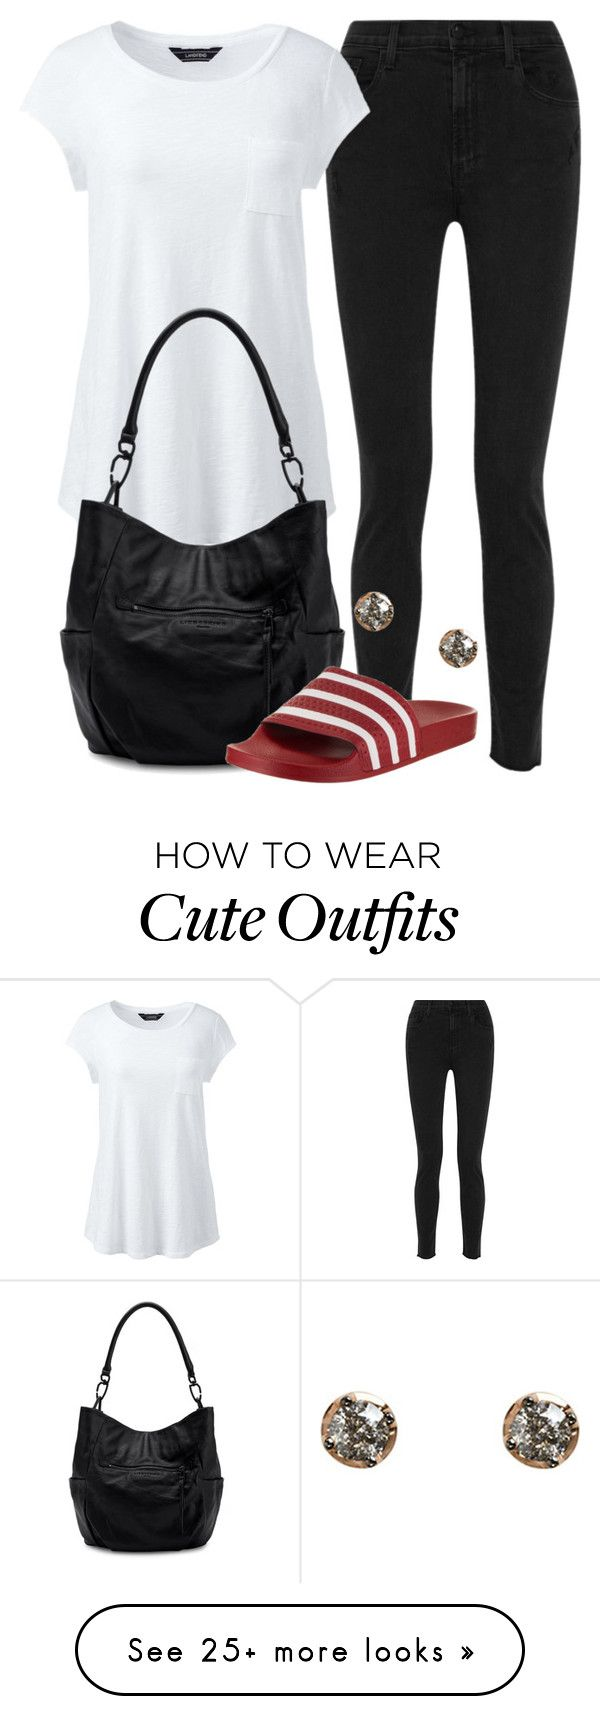 """""""Cute Canada Day Outfit """" by coolchick1630 on Polyvore featuring J Brand, Lands' End, Liebeskind, adidas and Annoushka"""